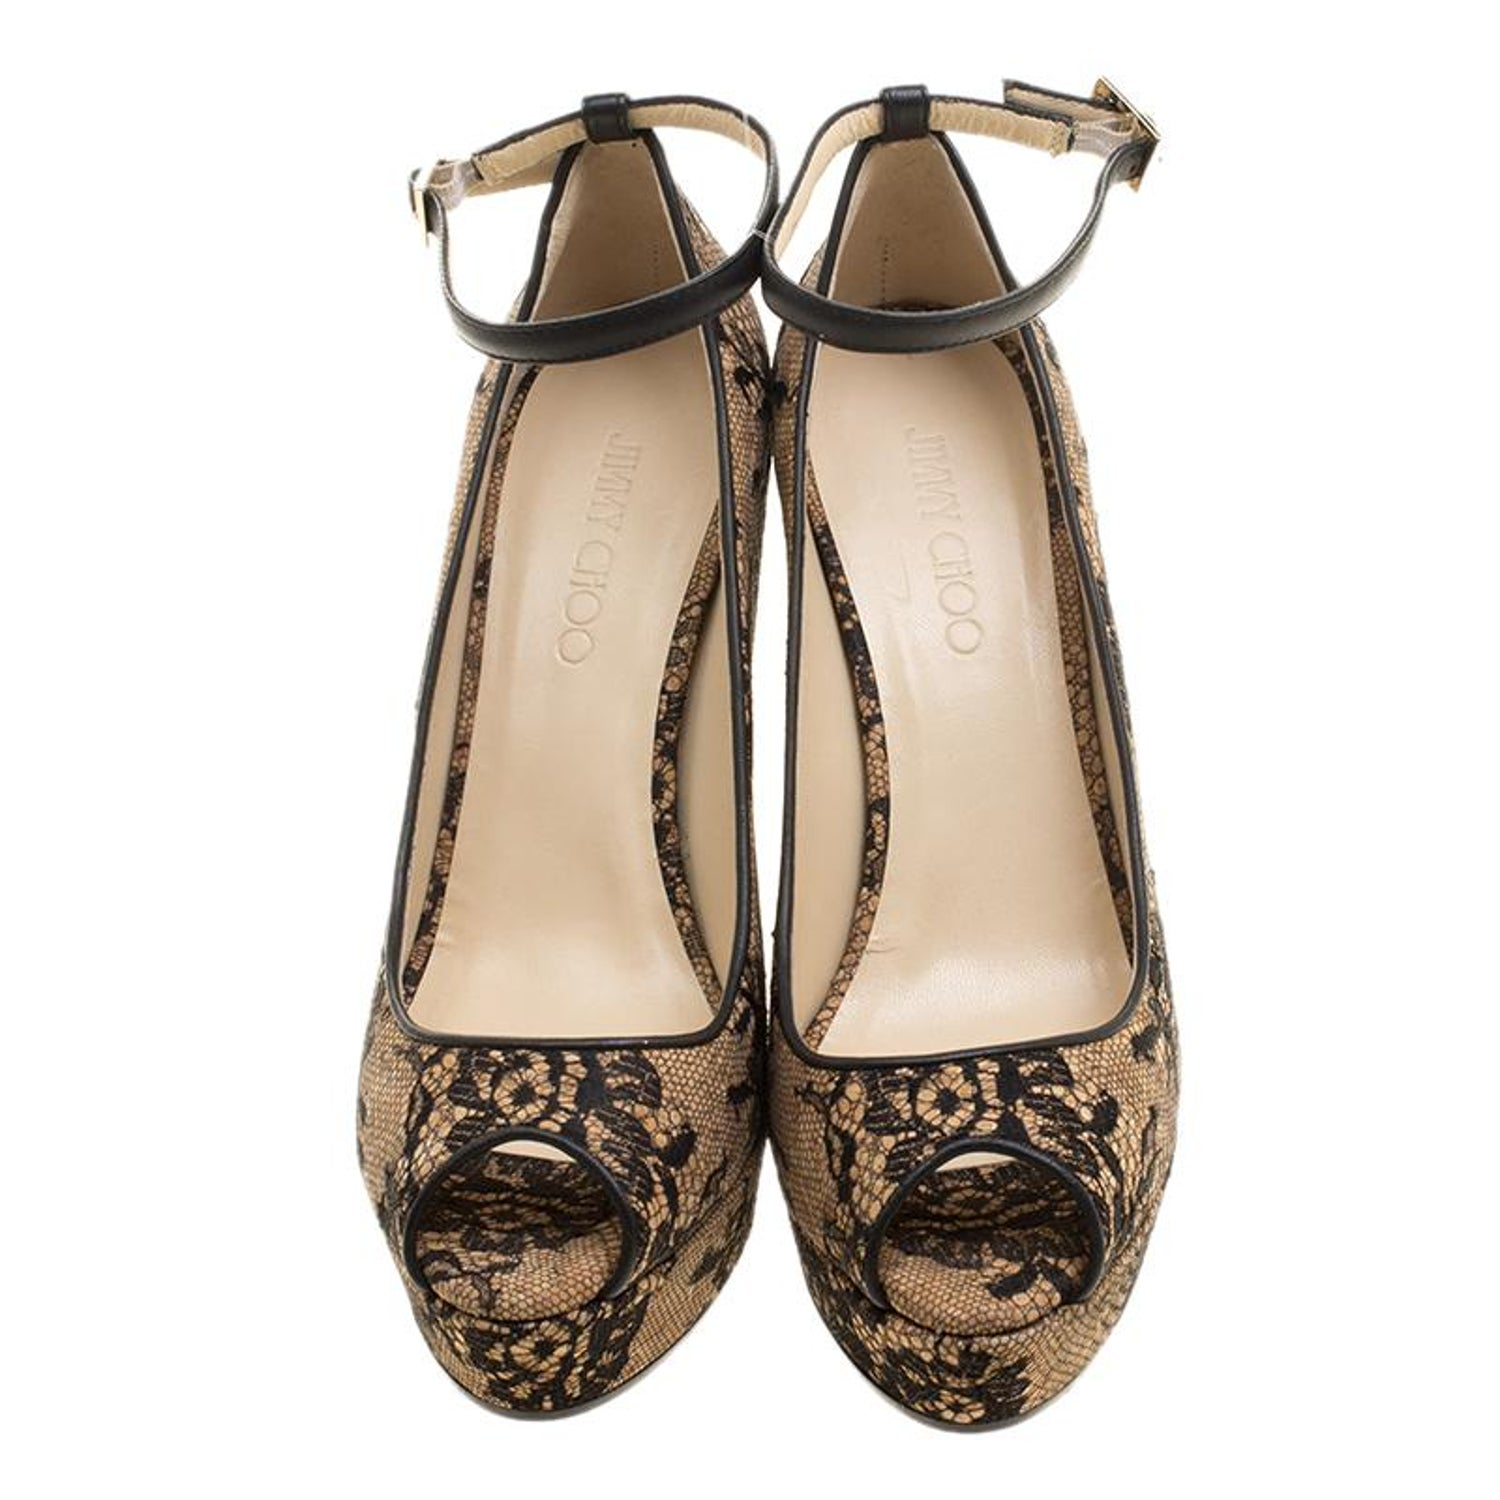 4ab7869991 Jimmy Choo Beige Cork and Lace Pacific Peep Toe Ankle Strap Wedge Pumps  Size 41 For Sale at 1stdibs